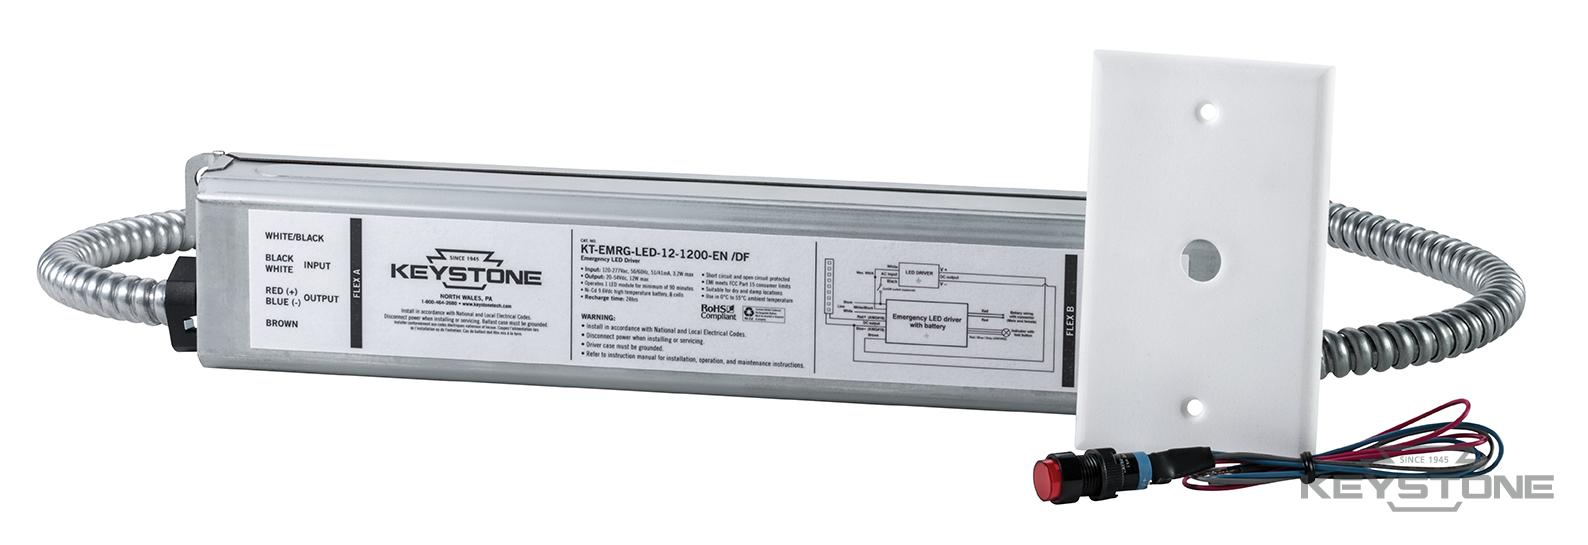 Led emergency ballasts keystone technologies kt emrg led 12 1200 endf w button and plate arubaitofo Choice Image